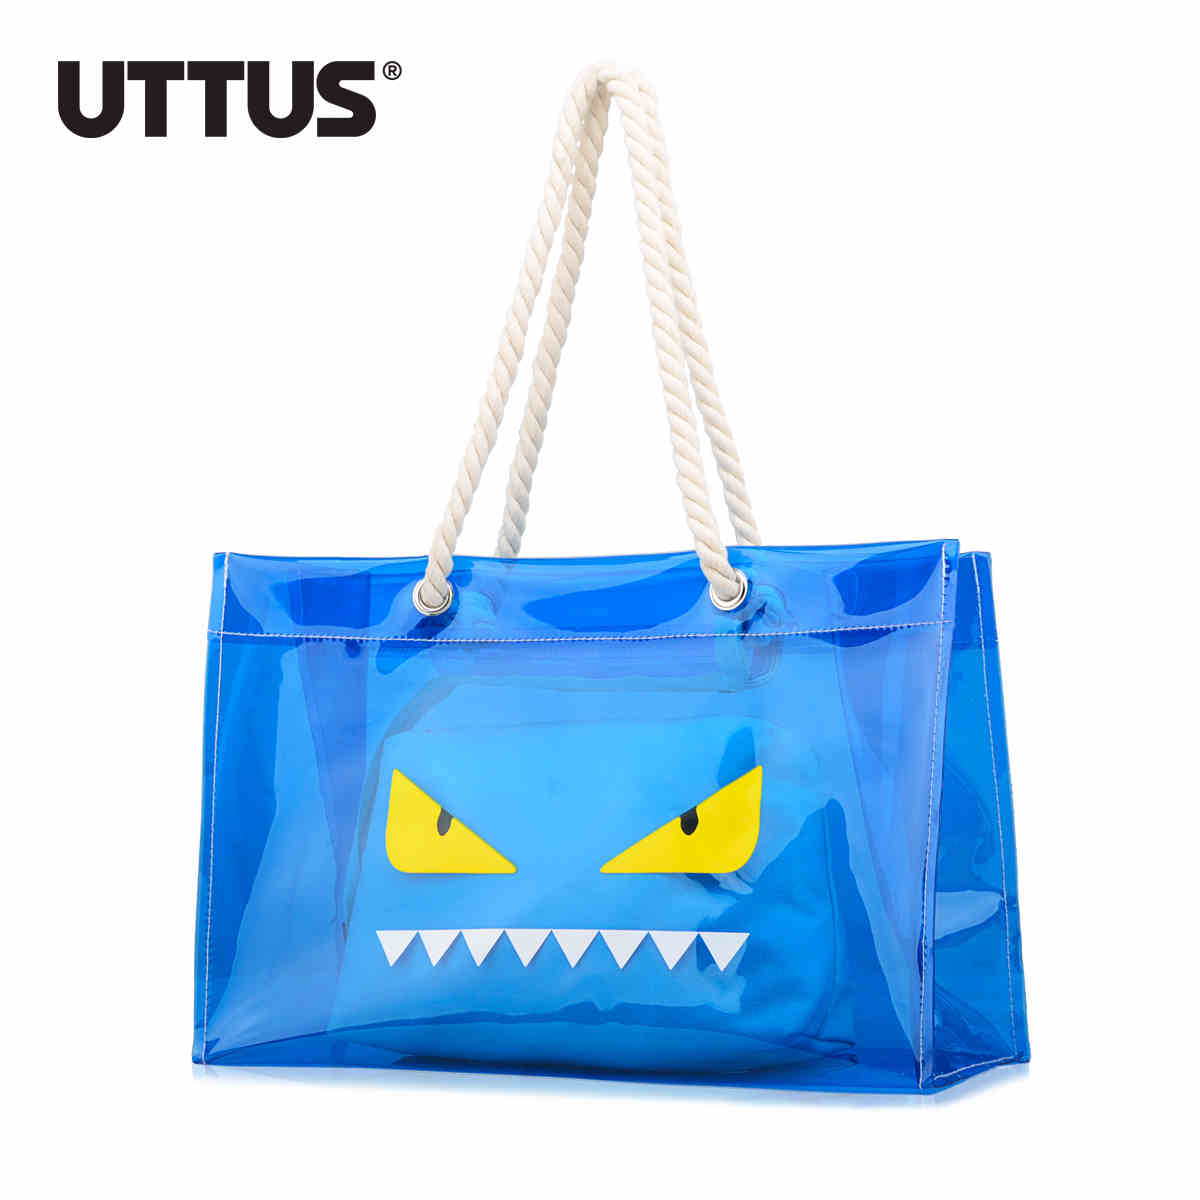 2017 Jelly Candy Clear Transparent Handbag Tote Shoulder Bags Beach Bag 2-in-1 Evil Monster Eyes<br><br>Aliexpress